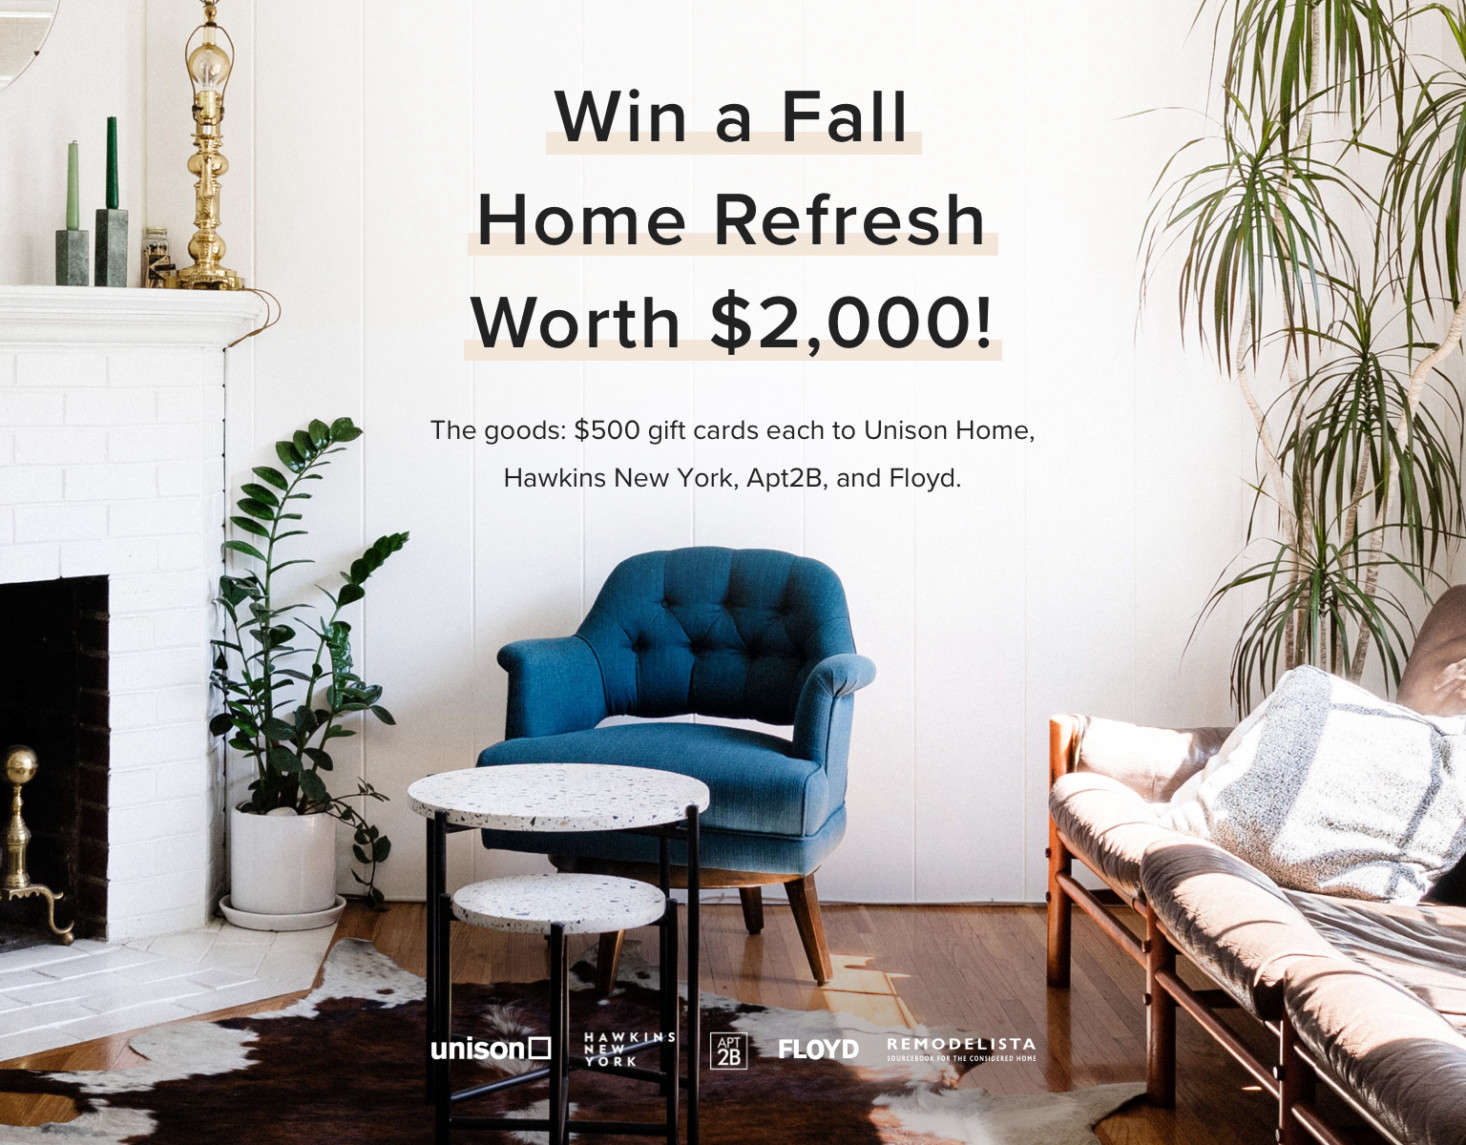 Win a Fall Home Refresh Worth $2,000 - Remodelista